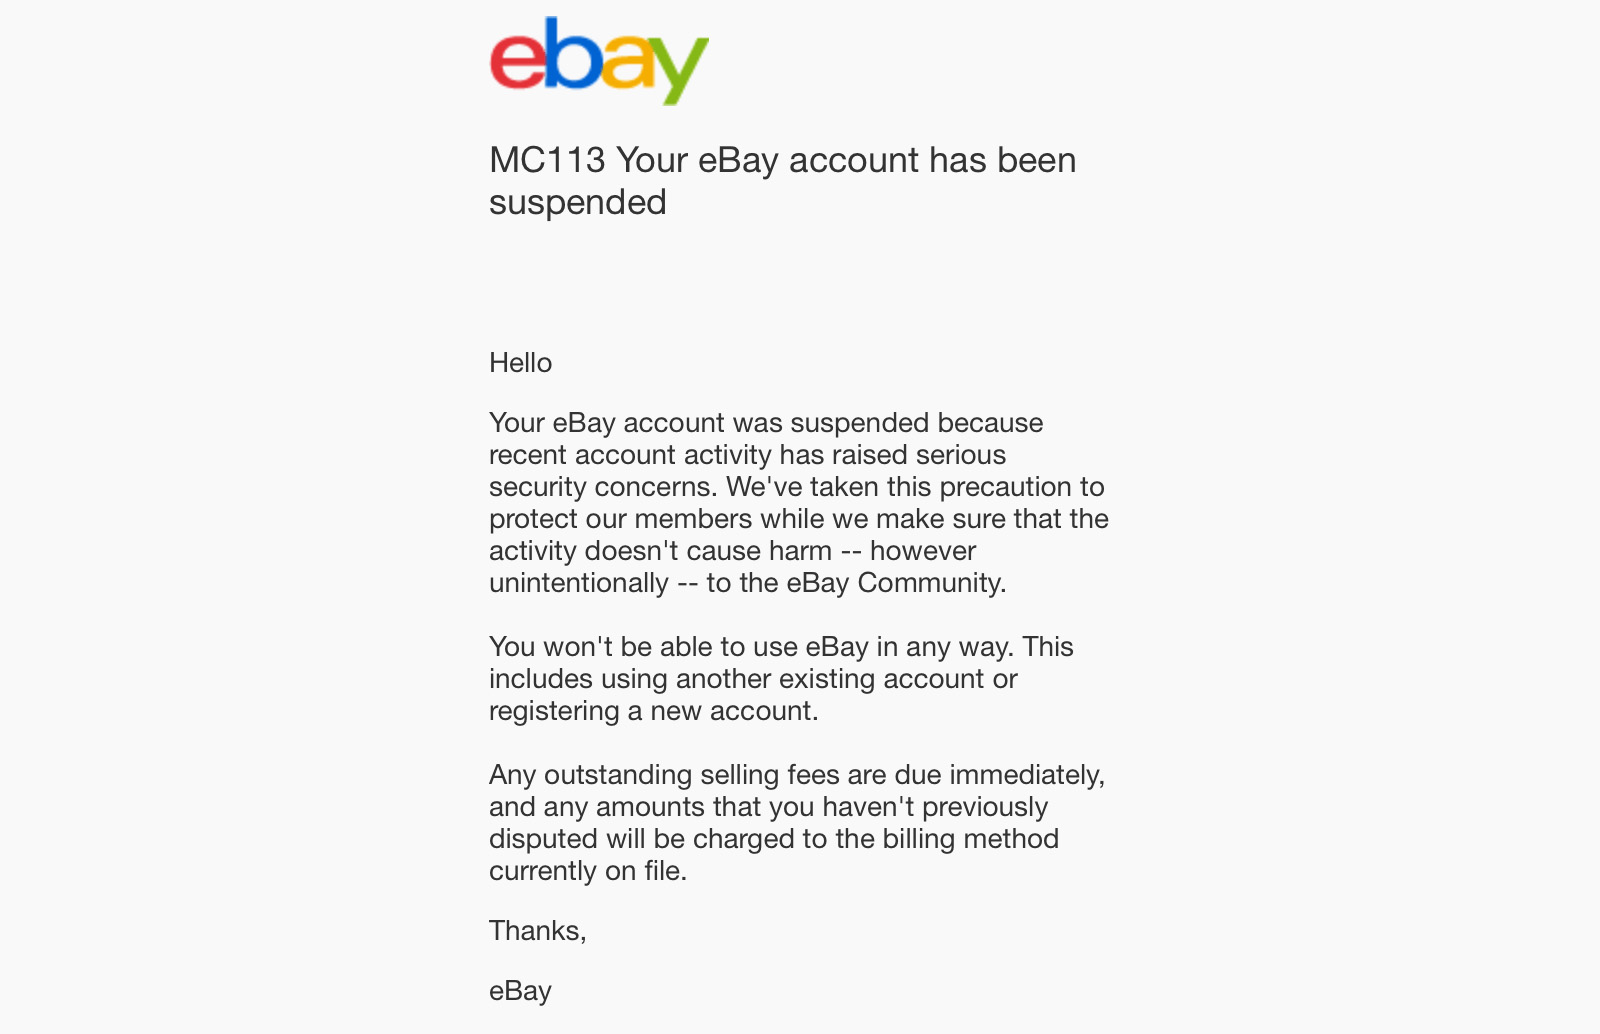 ebay suspended mc113 example